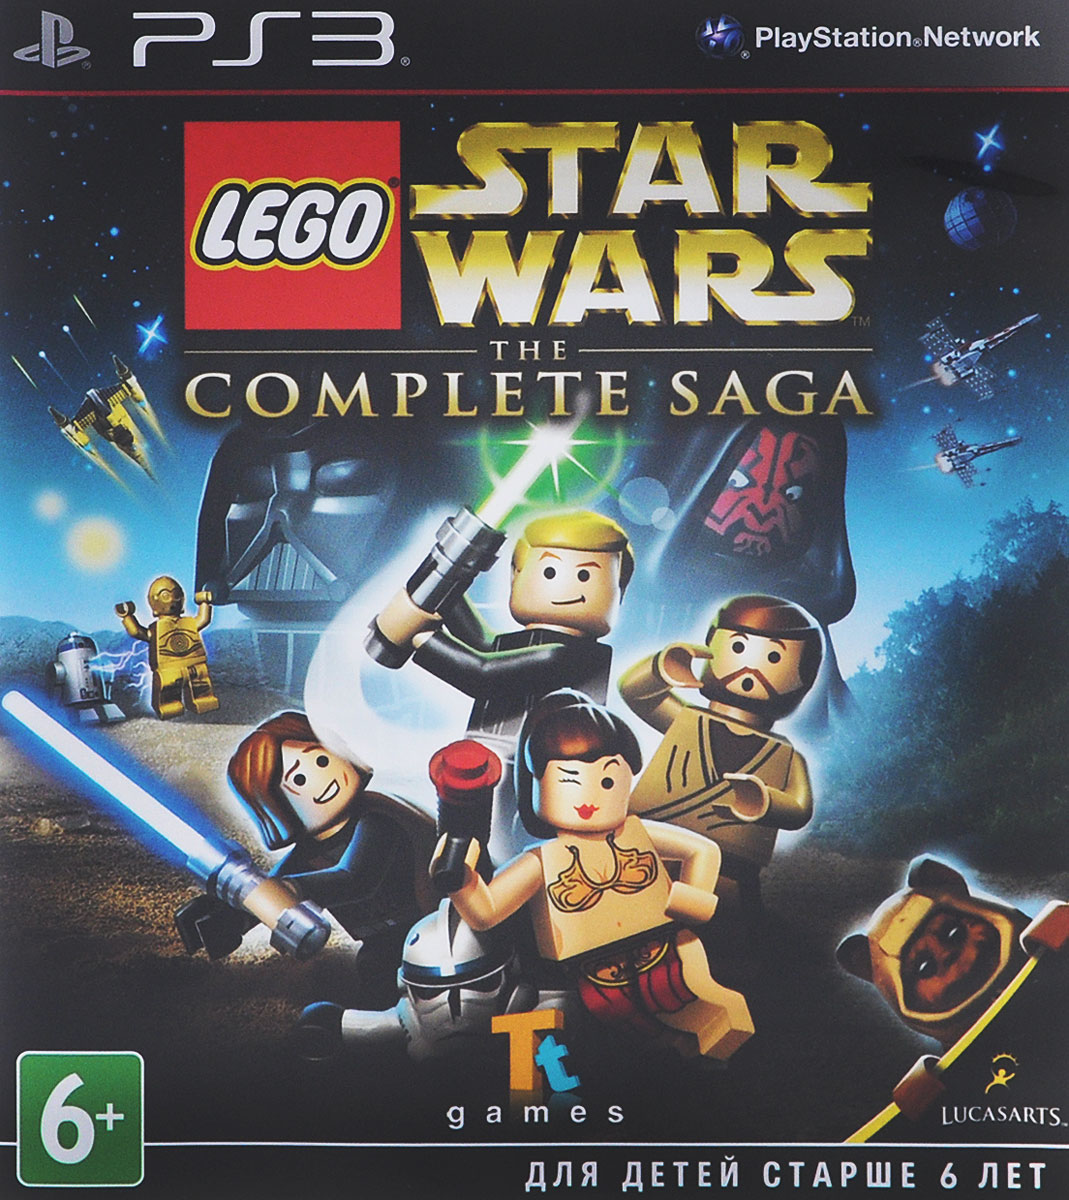 LEGO Star Wars: The Complete Saga (PS3), Traveller's Tales